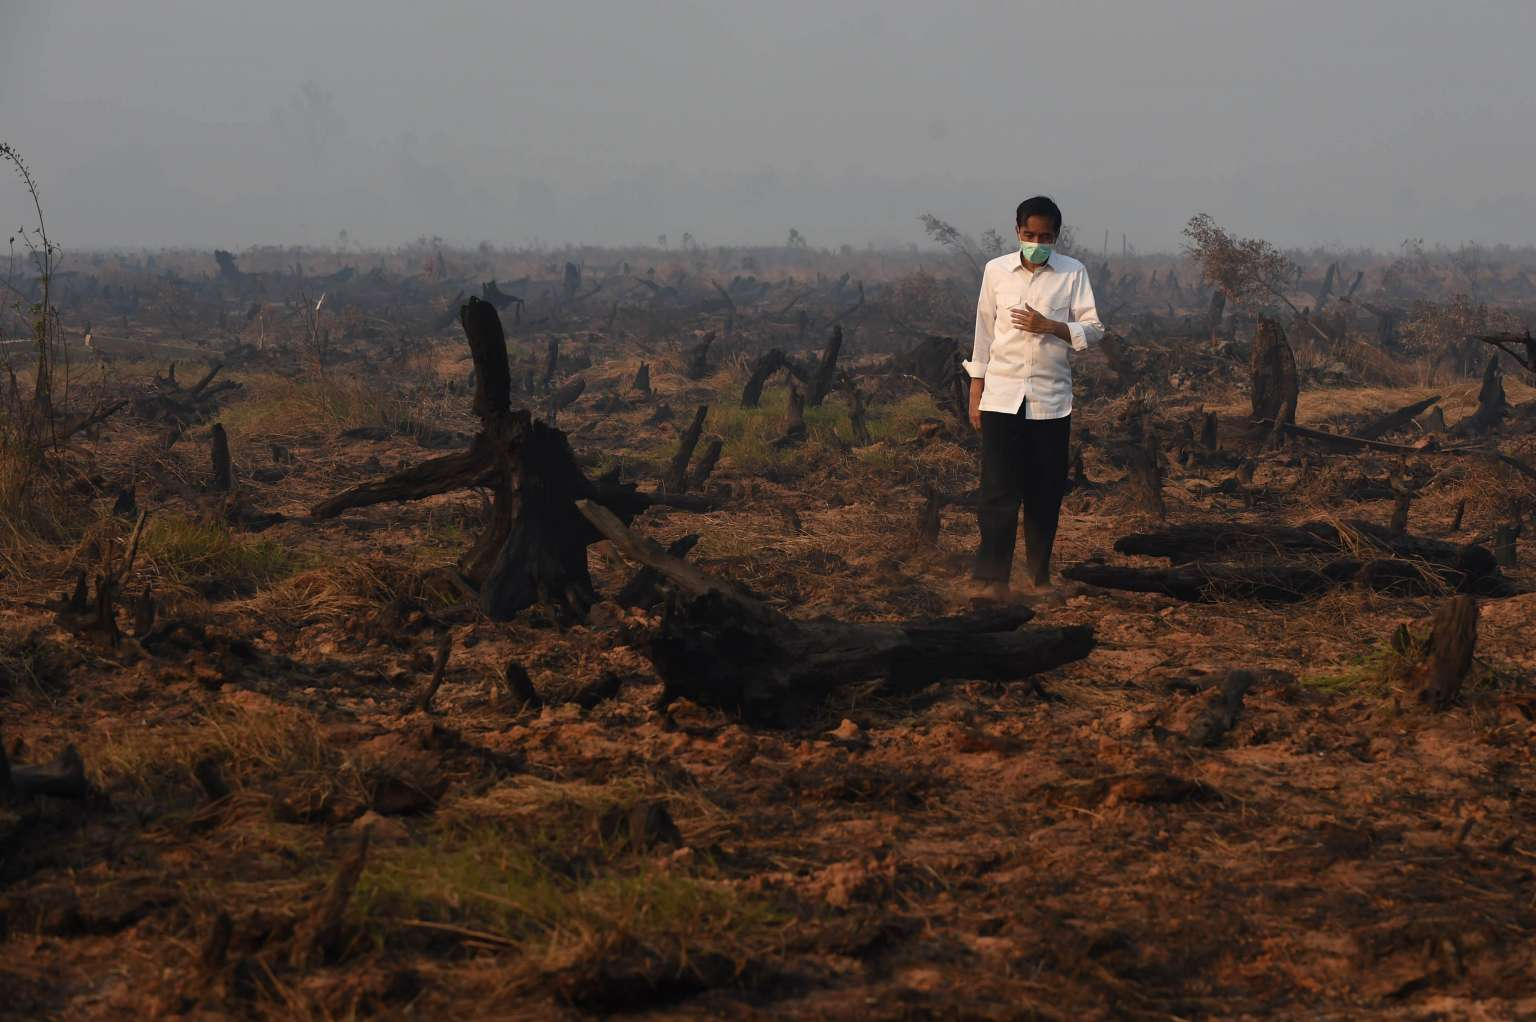 Indonesia's President Joko Widodo inspects a peatland clearing that was engulfed by fire in 2015. (Photo: AFP/Romeo Gacad)